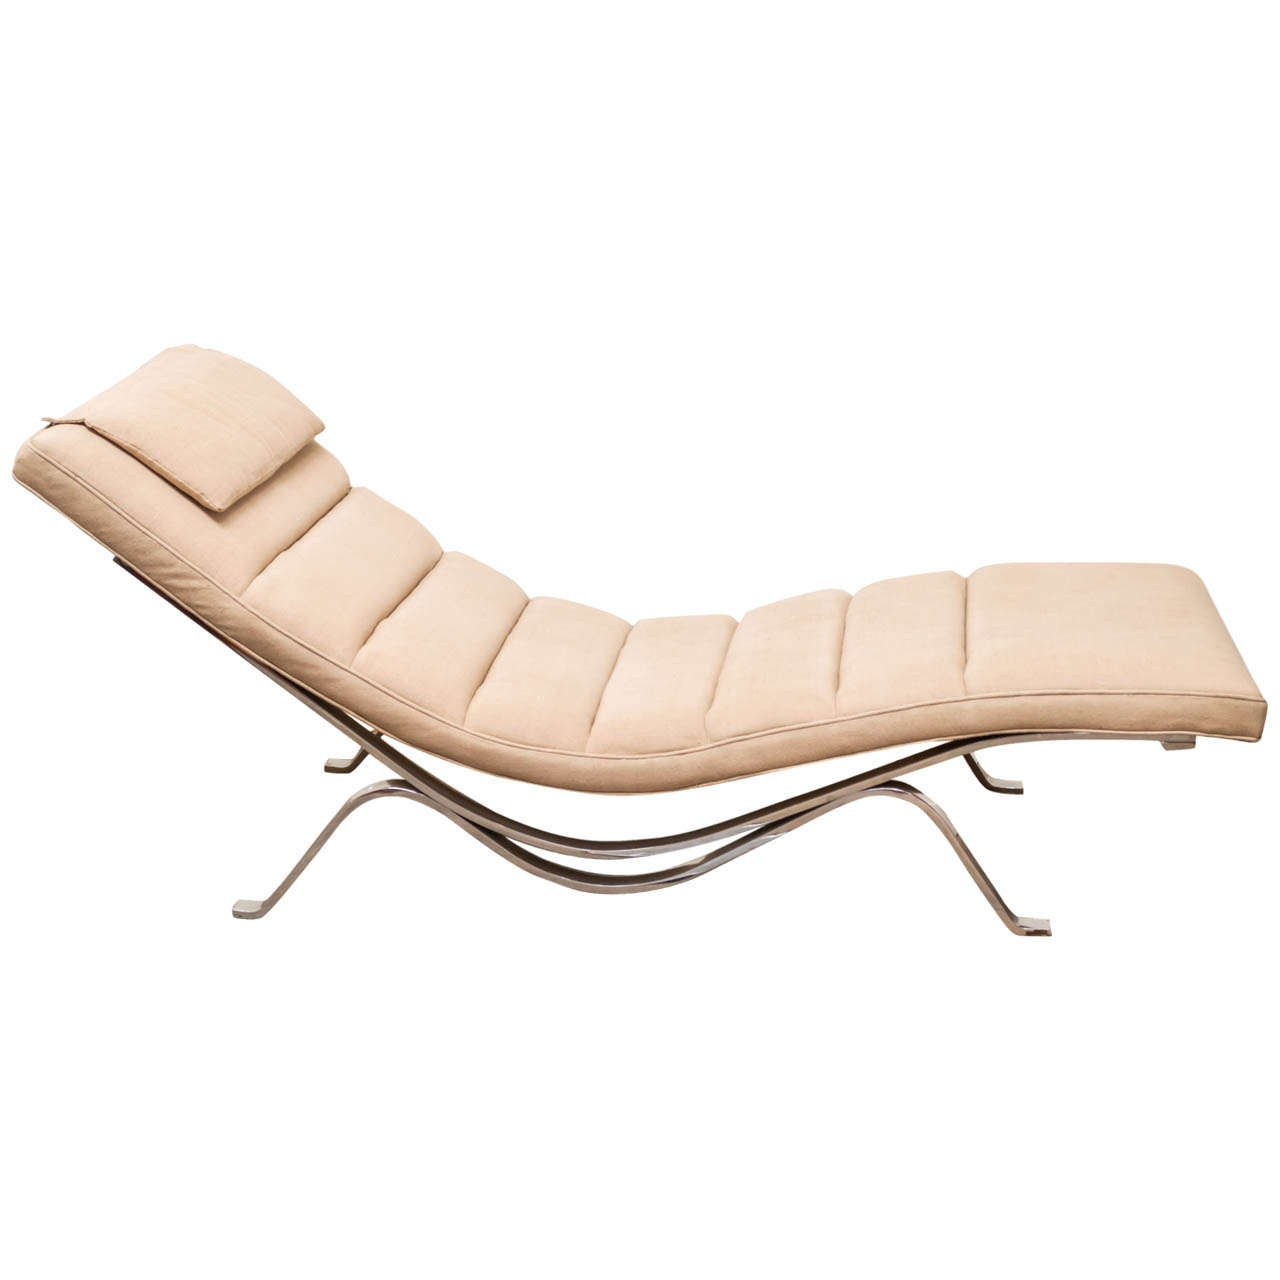 George nelson chaise lounge for sale at 1stdibs for Chaise for sale